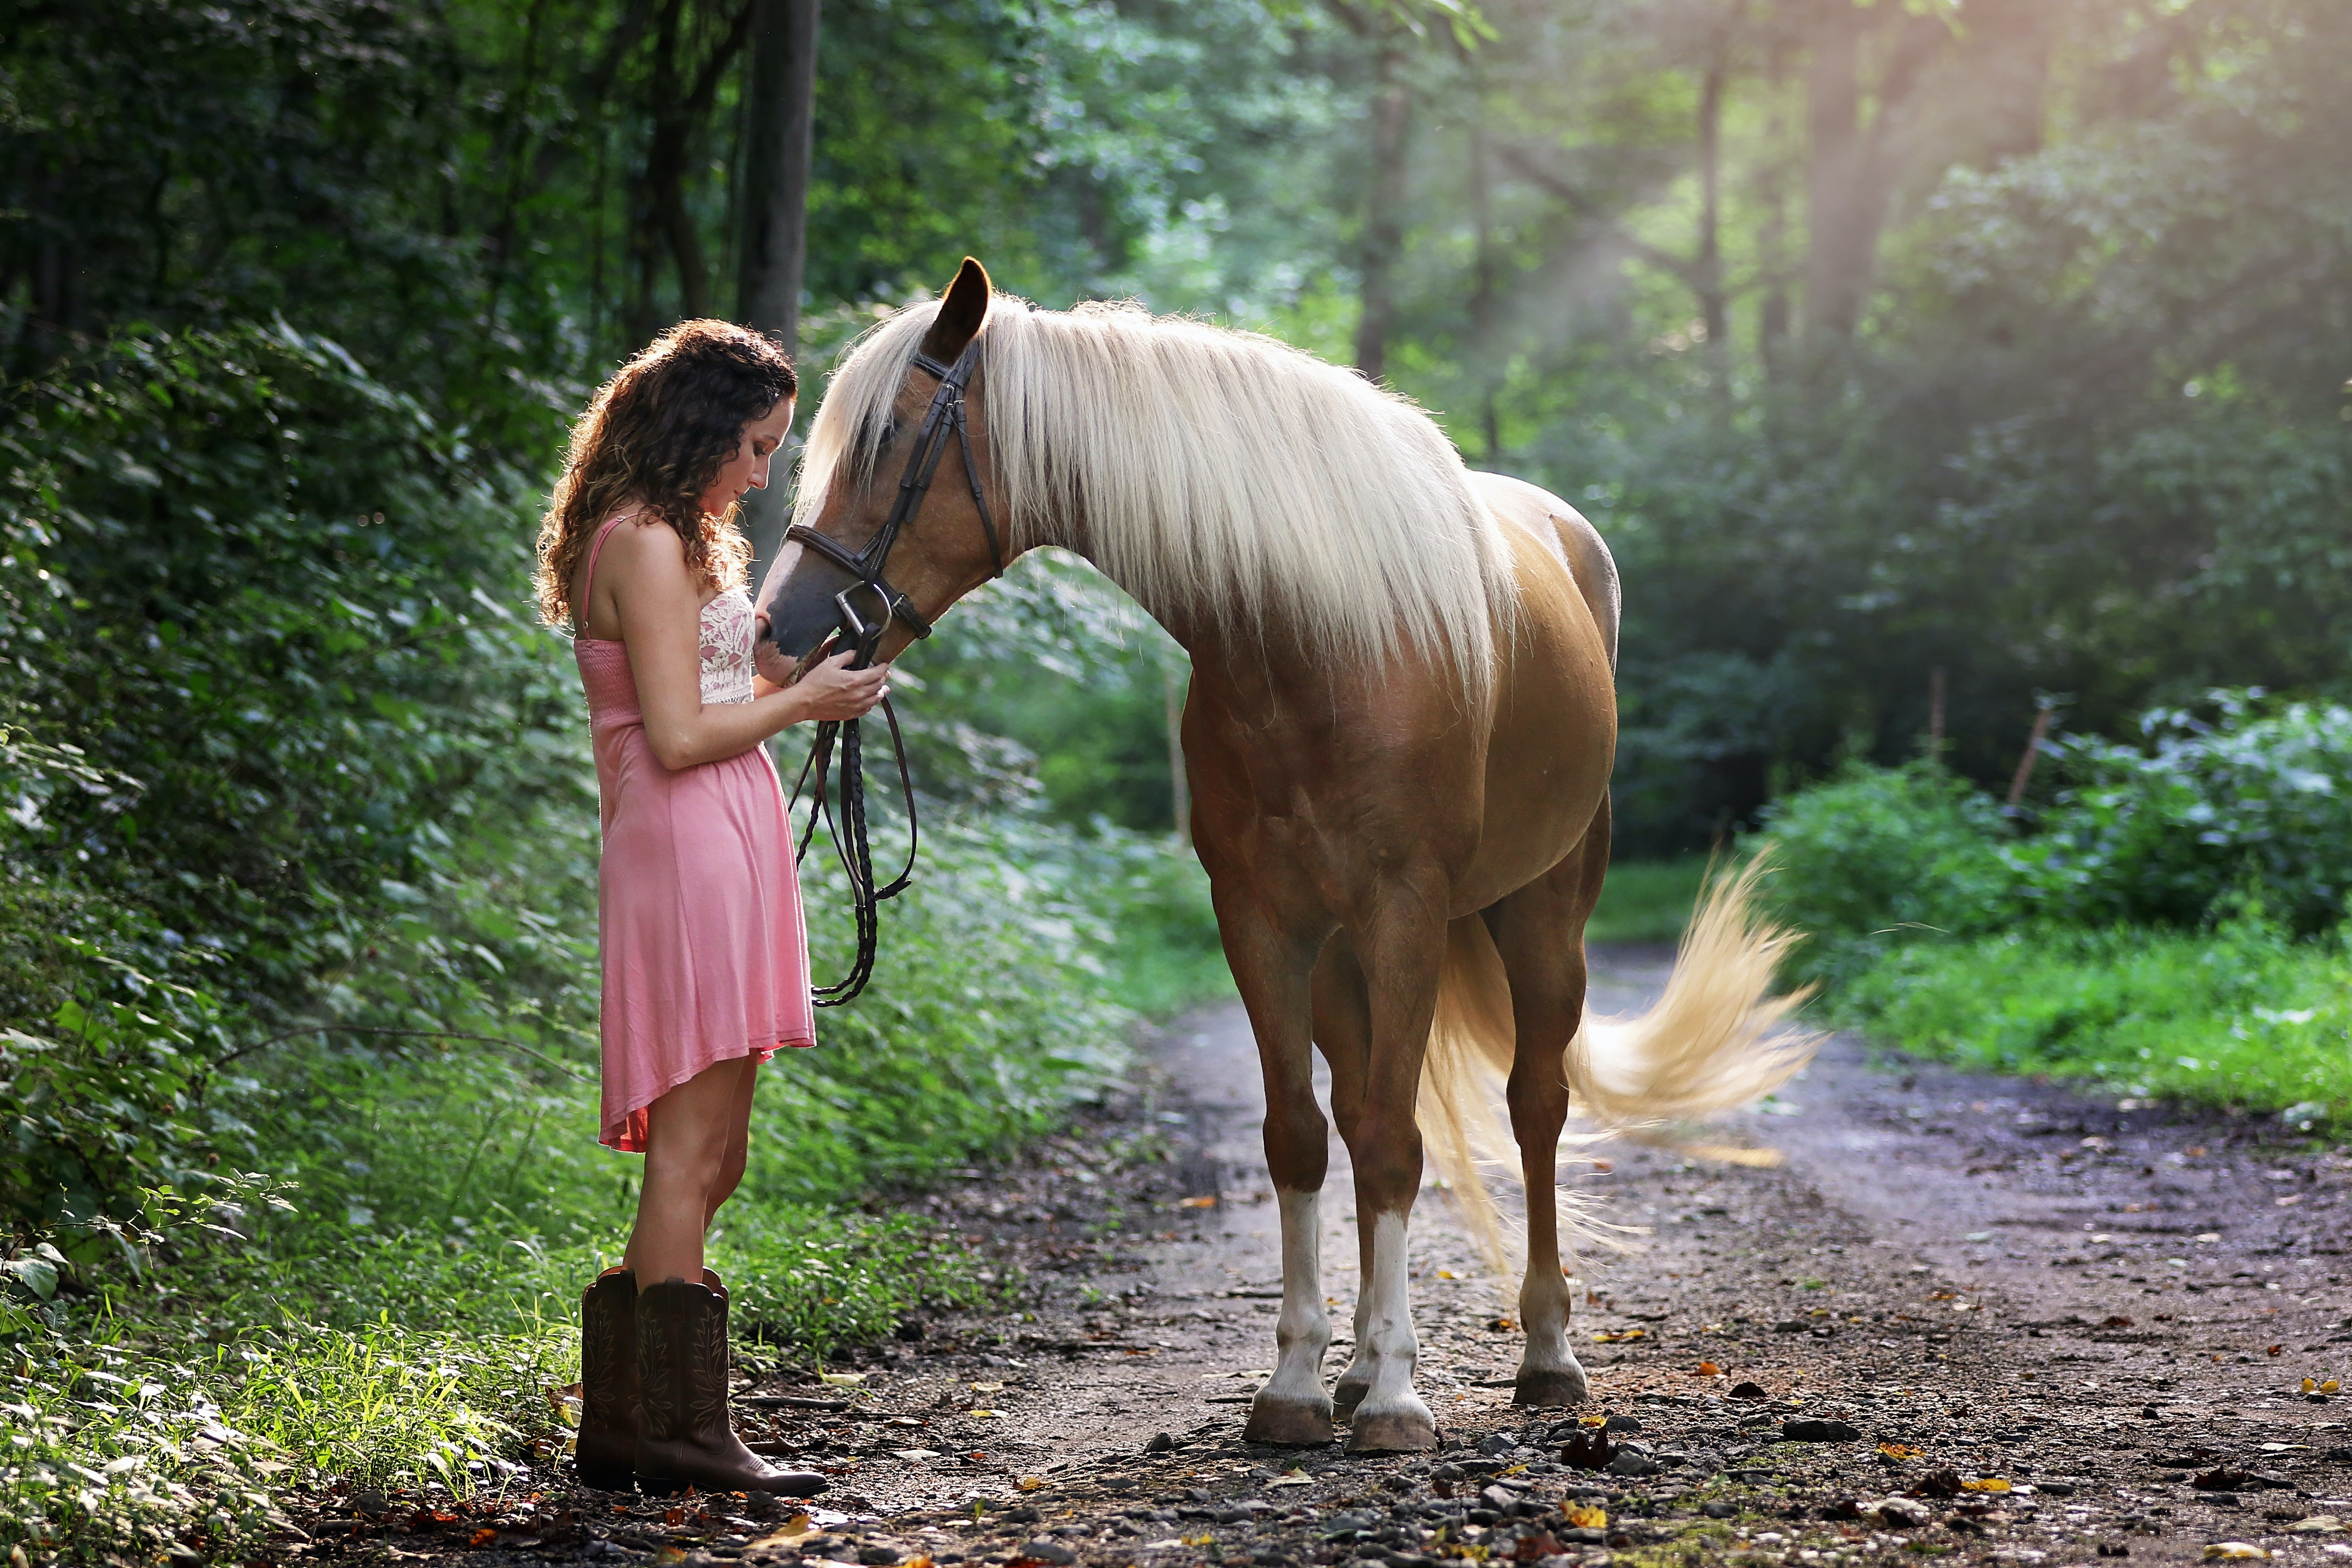 You Can Use All Horse Images Commercially Because They Are Free Stock Photos And Licensed Under The CC0 License To Download